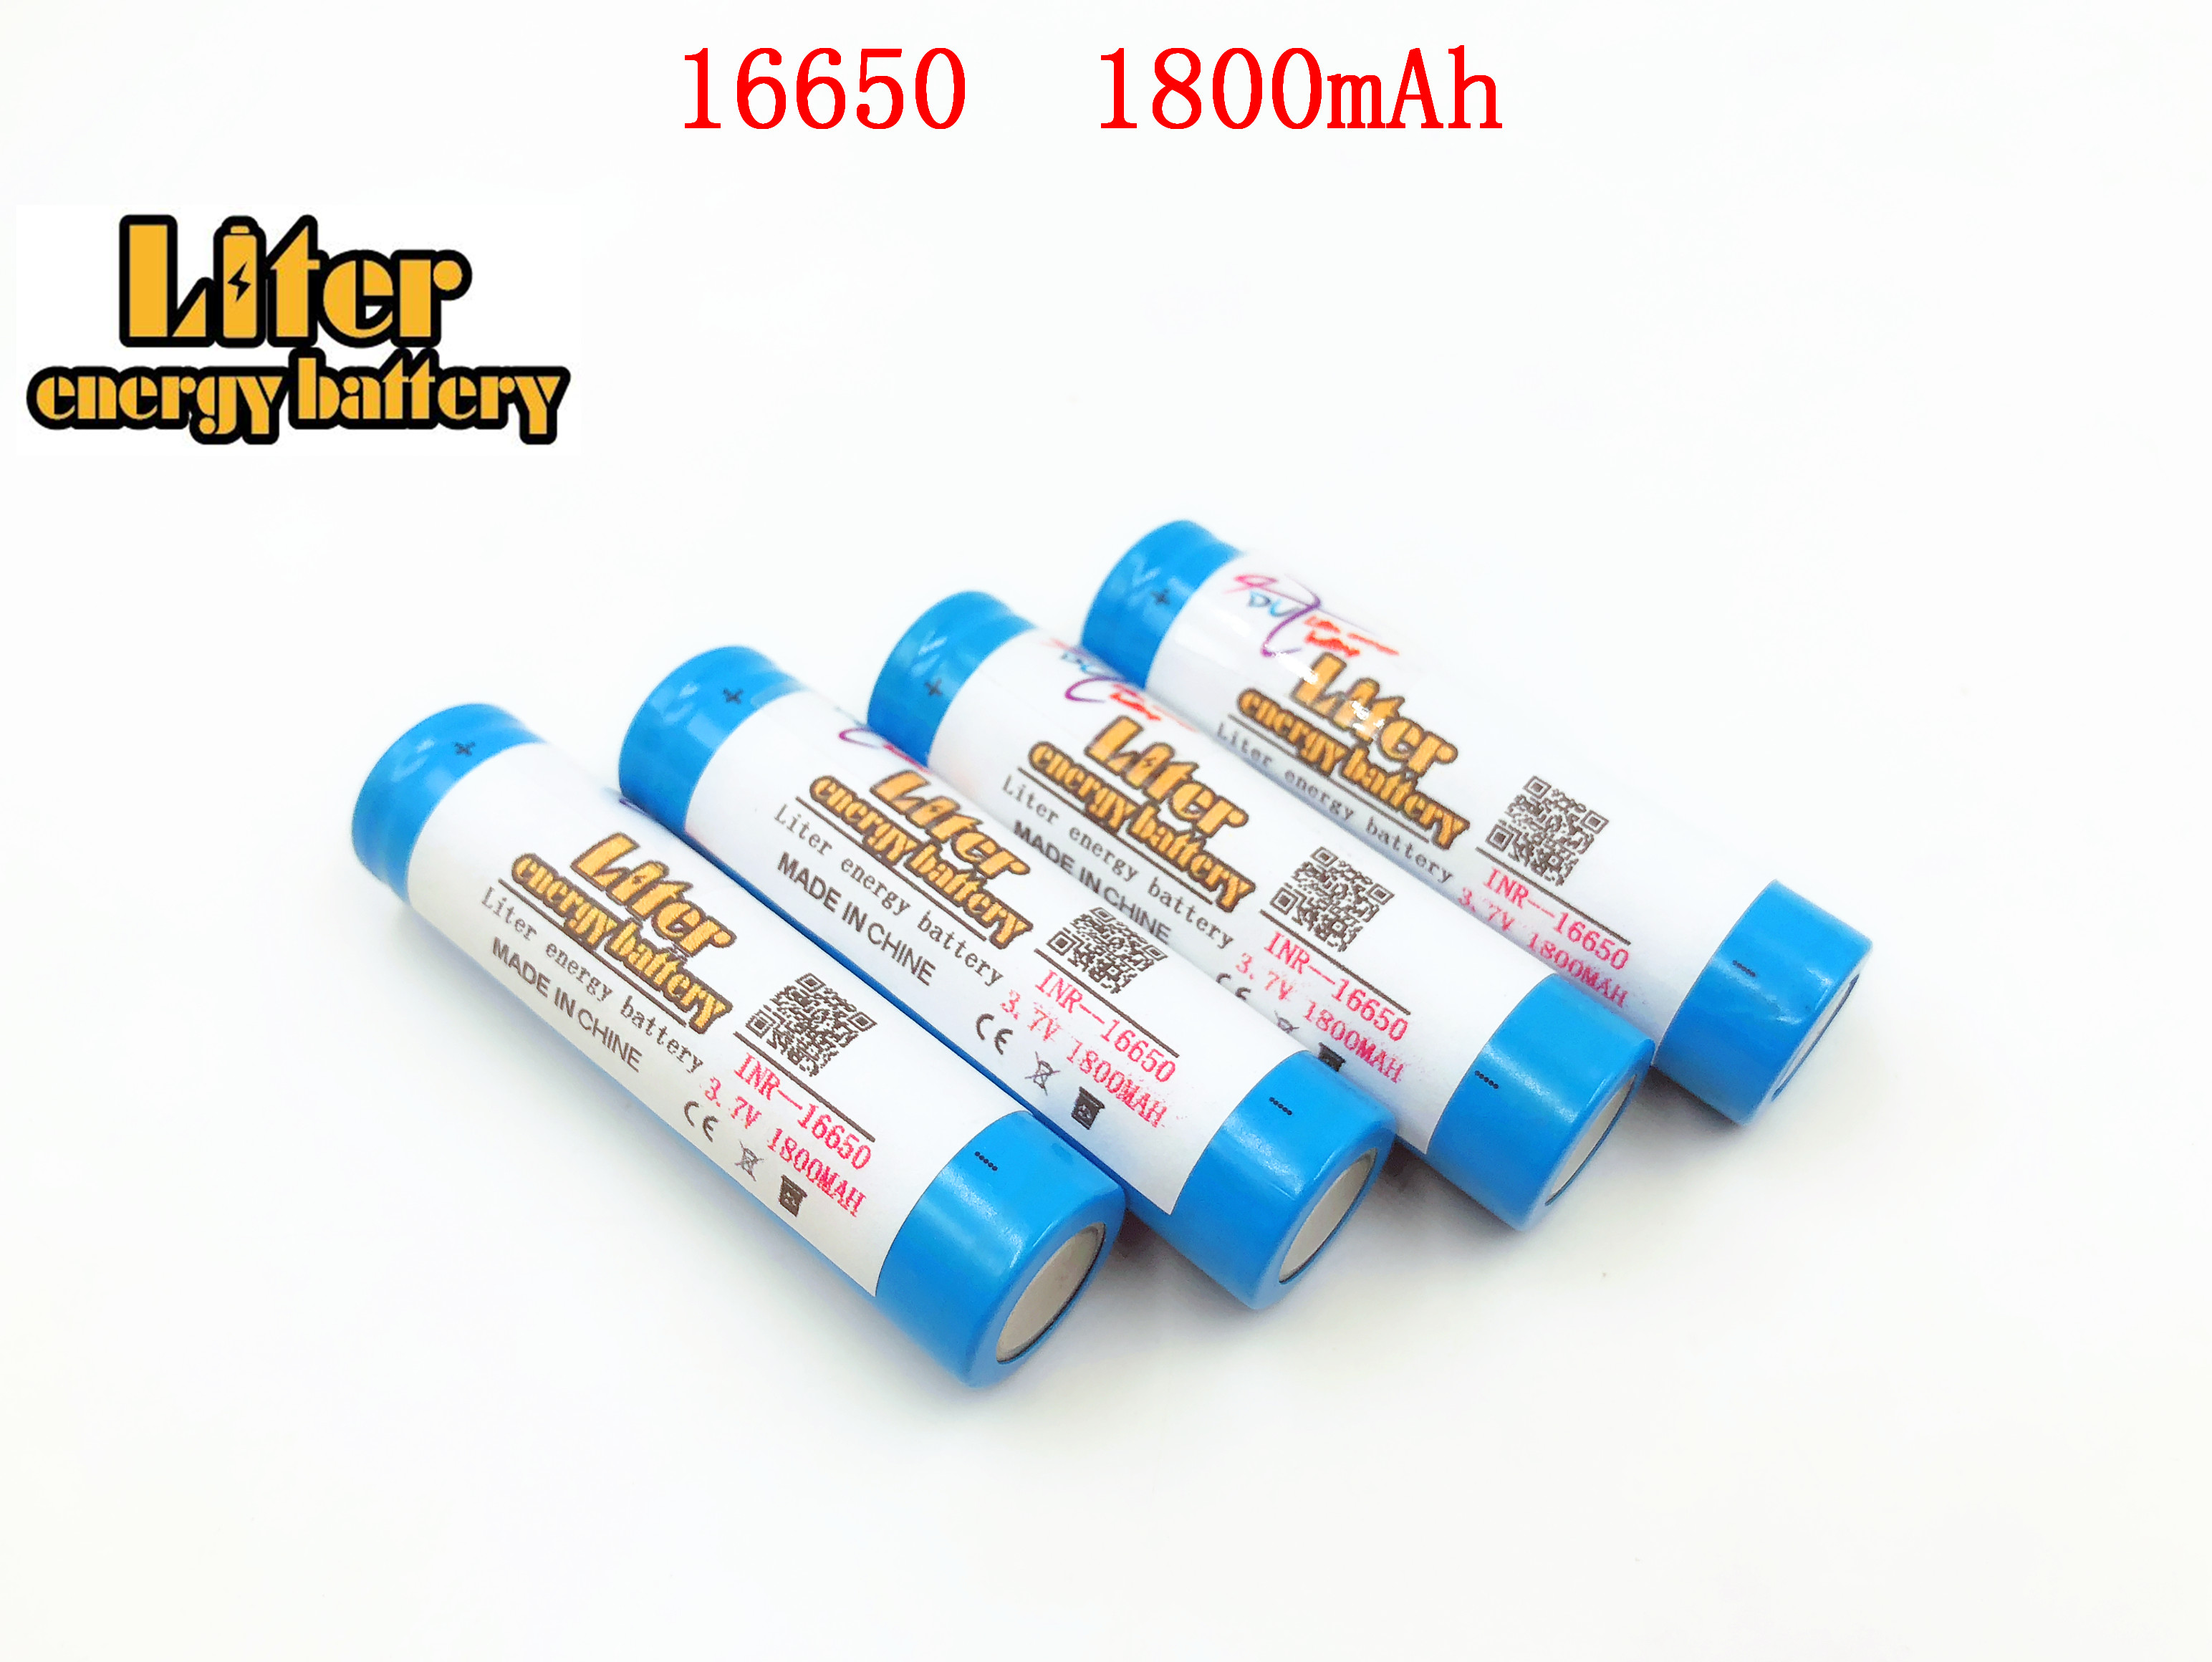 Liter energy <font><b>battery</b></font> Free shipping !!!2PCS/LOT original Keeppower 3.7V <font><b>16650</b></font> 1800mAh Rechargeable Li-ion <font><b>battery</b></font> image